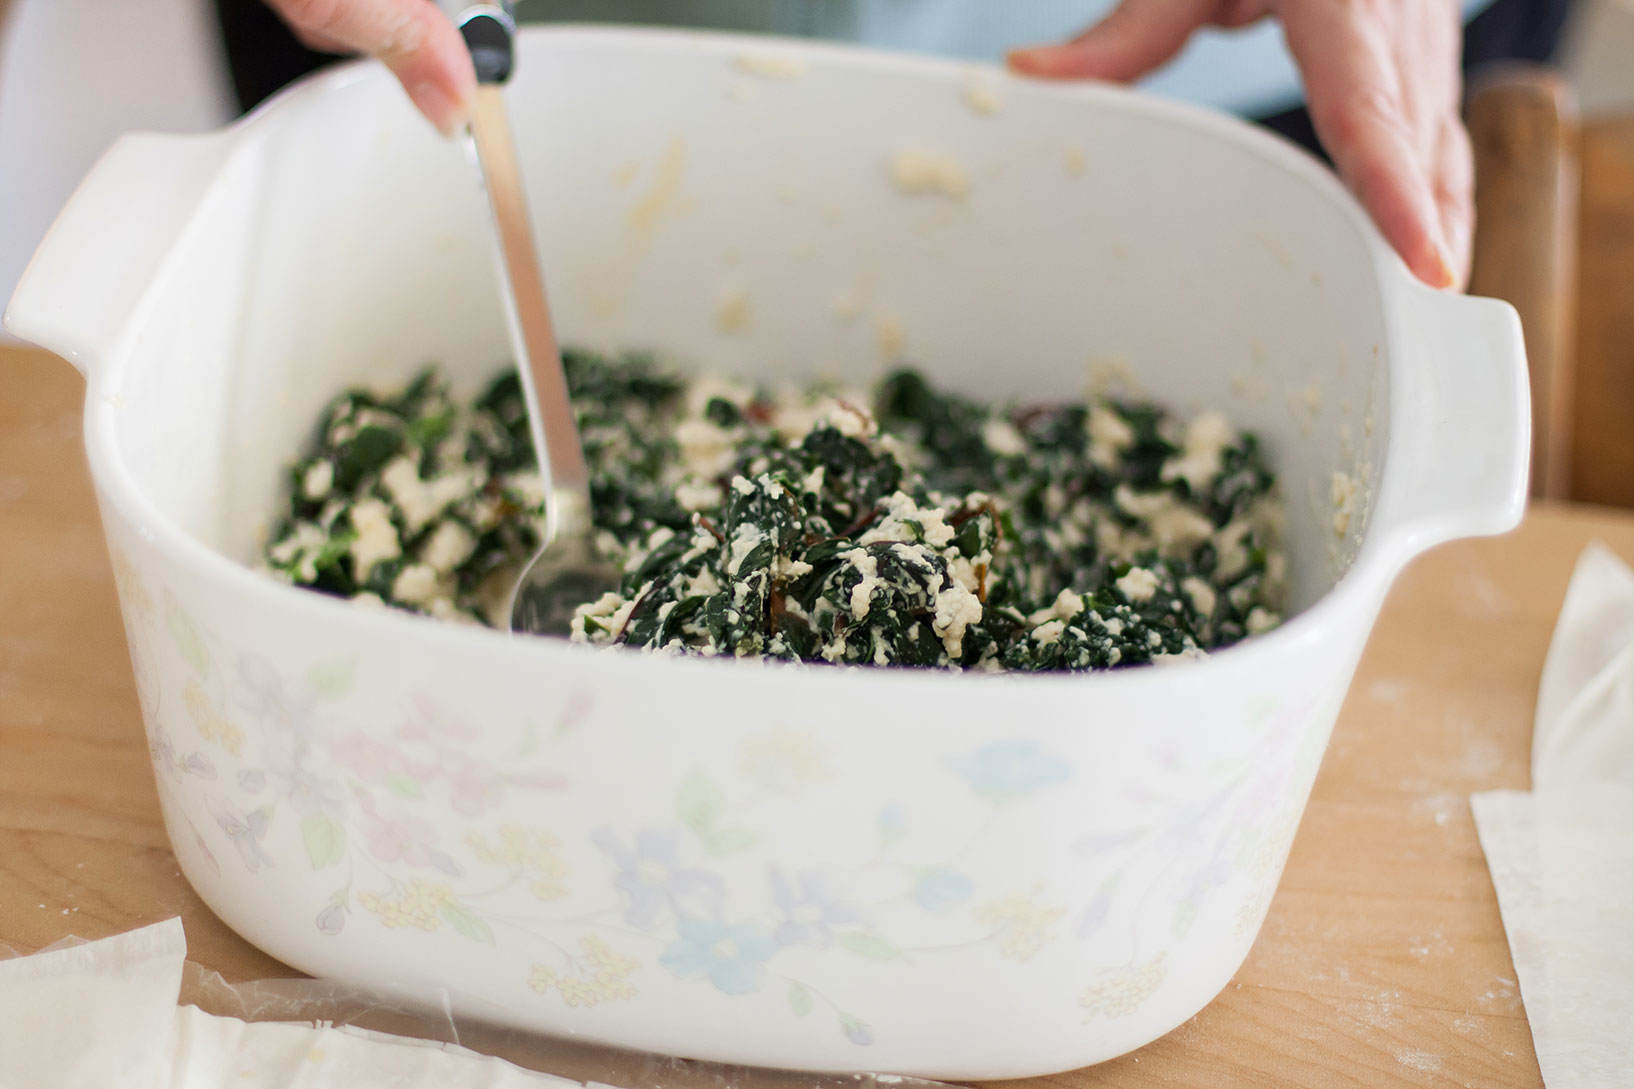 kale pie filling